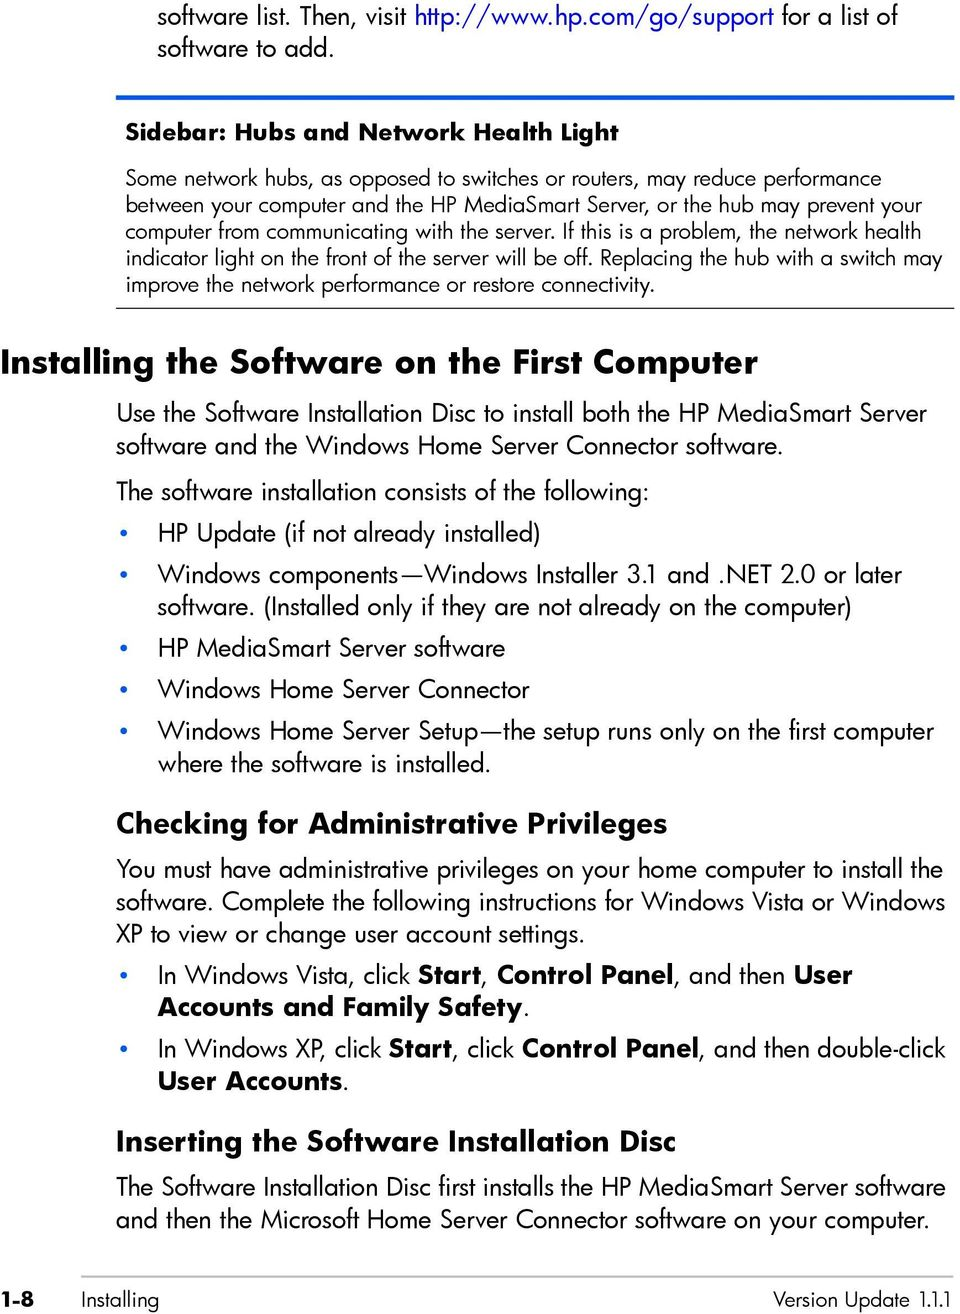 computer from communicating with the server. If this is a problem, the network health indicator light on the front of the server will be off.